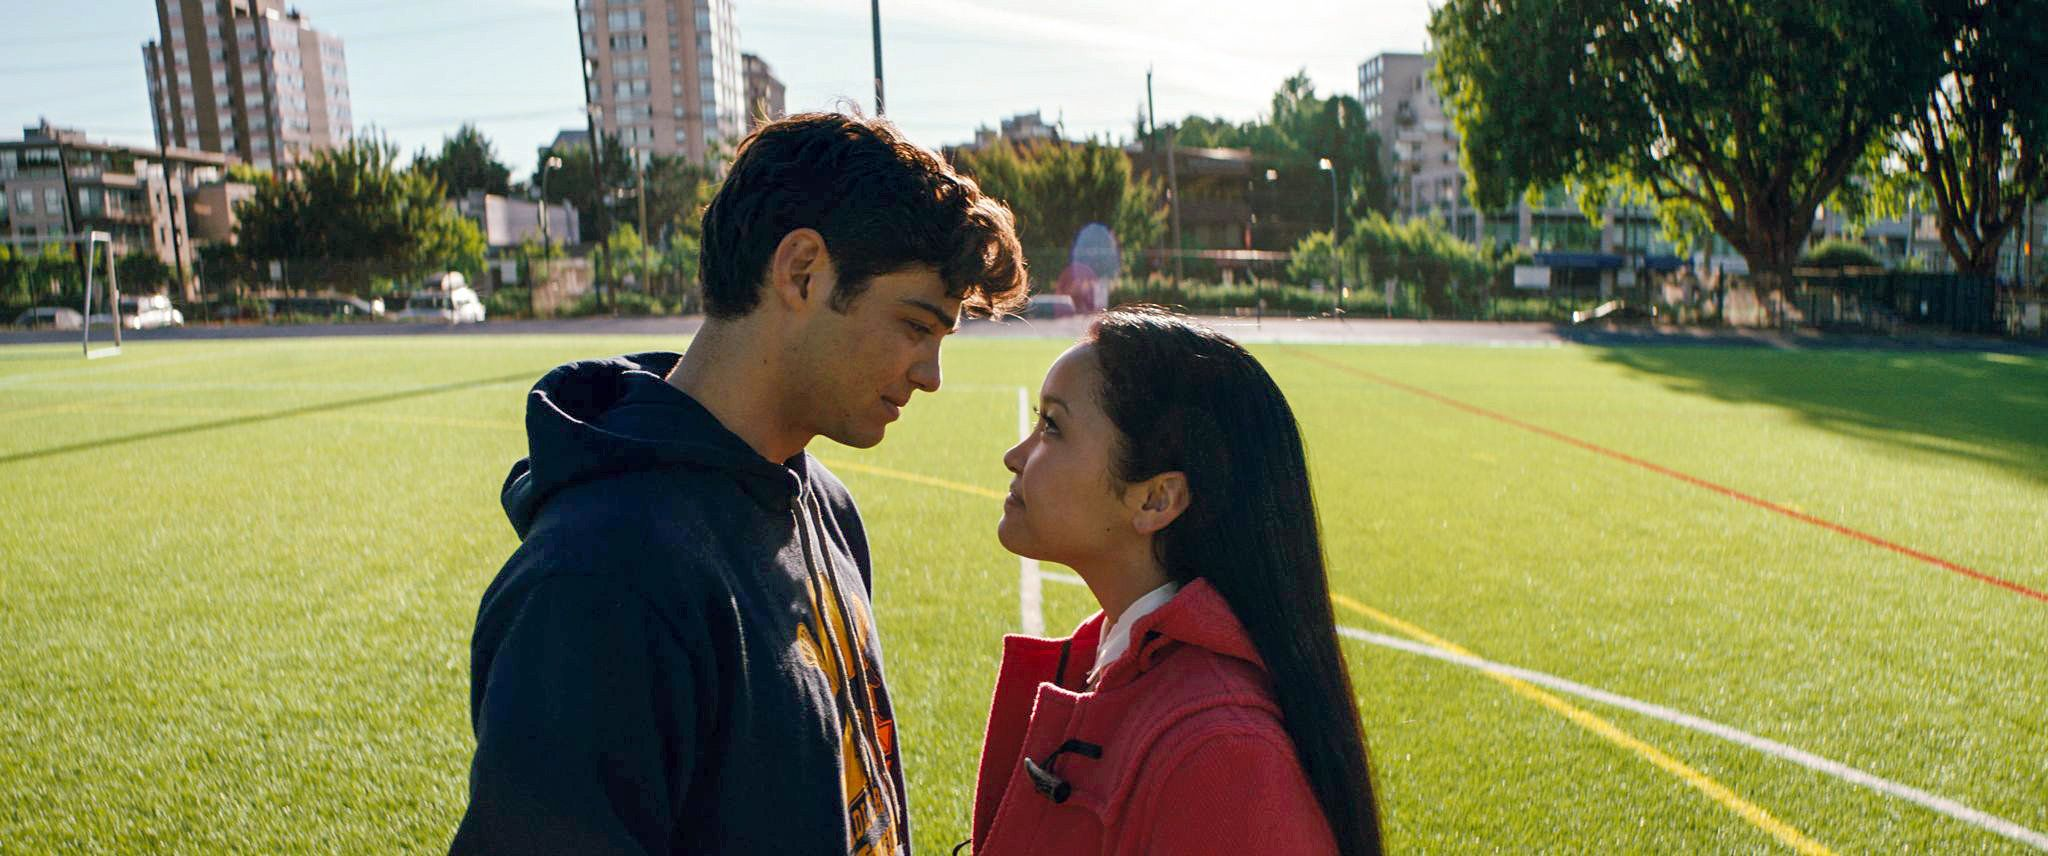 Let's Talk About Peter Kavinsky And That Scrunchie